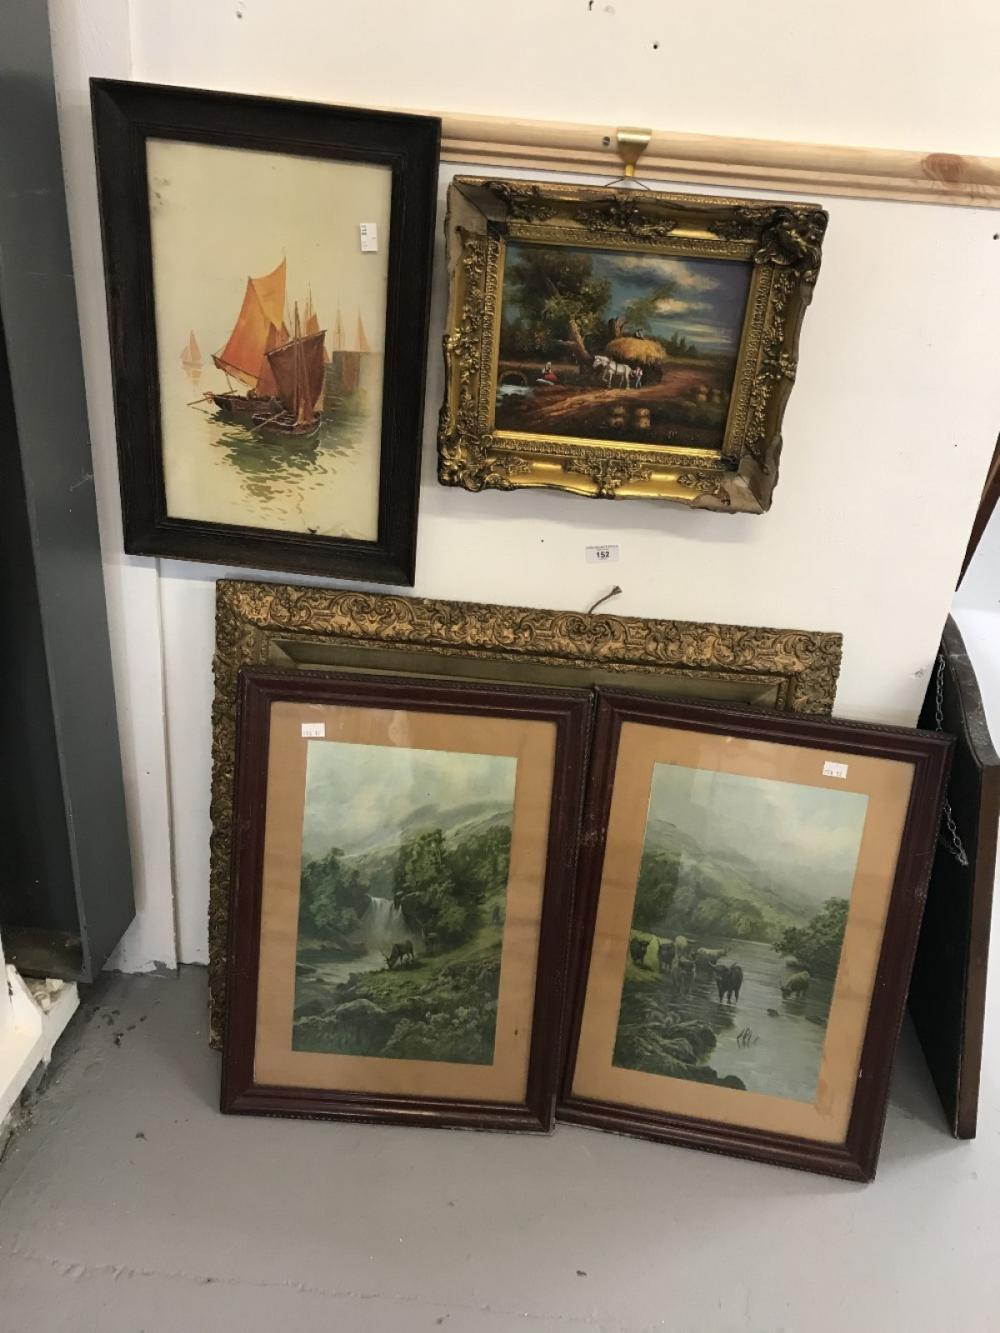 Watercolours - Prints: 20th cent. including  Sunset over wetlands, stags in a highland scene, cattle